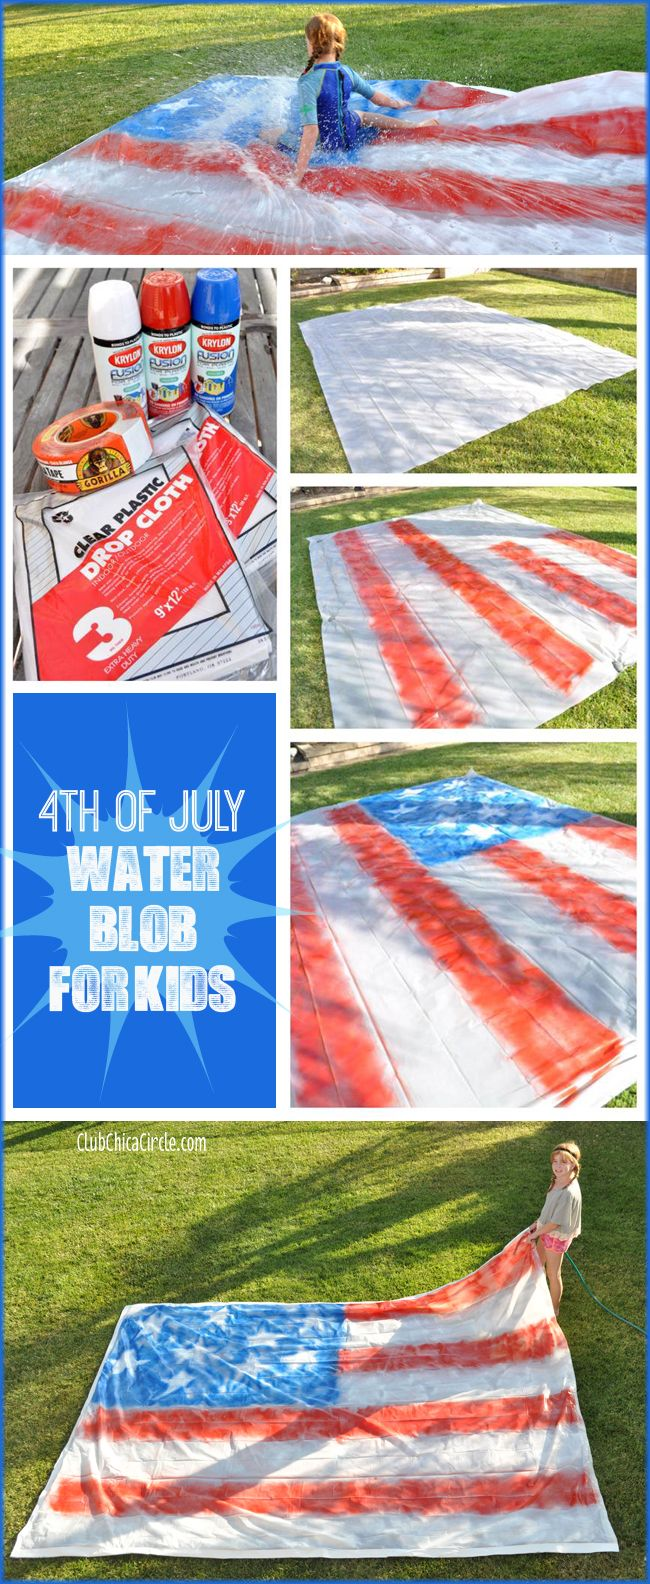 Probably the coolest 4th of July Backyard Party Game... ever! Make a Water Blob for Kids! www.clubchicacircle.com